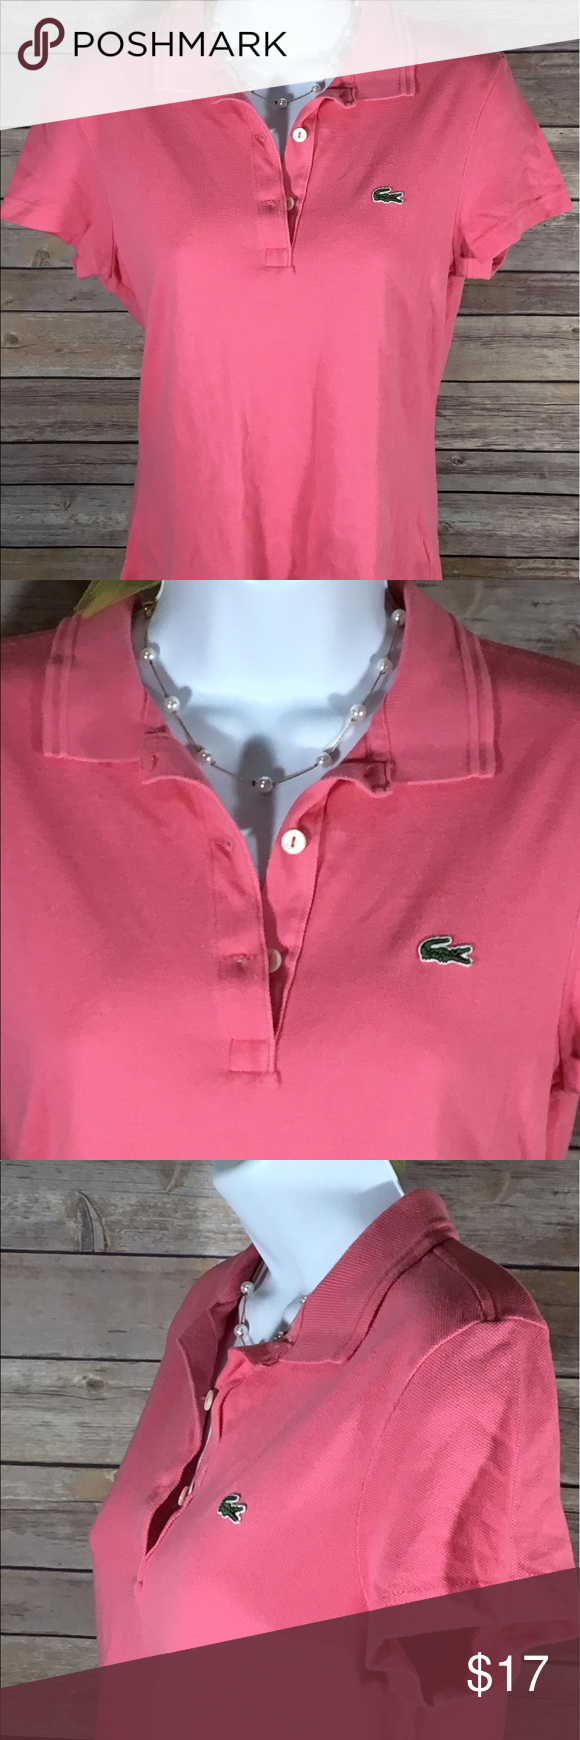 Lacoste Womens Pink Polo Short Sleeve Shirt 38